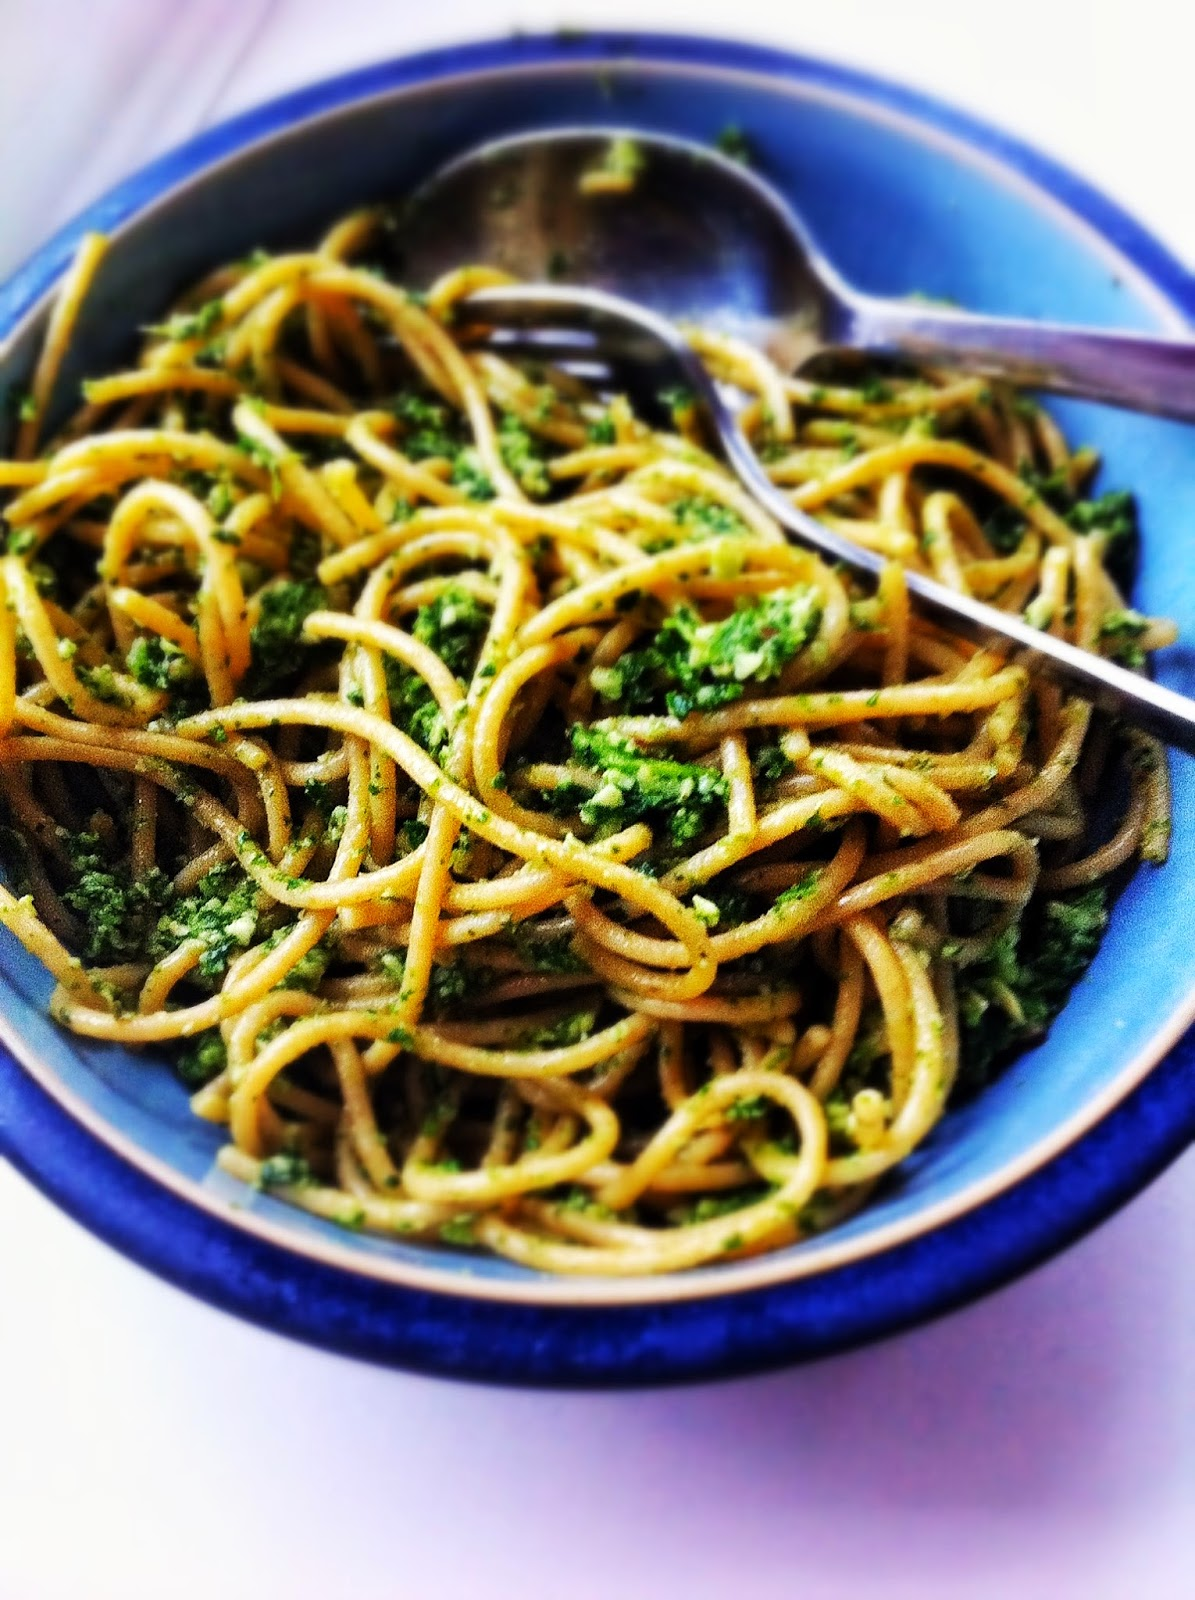 kale and brazil nut pesto